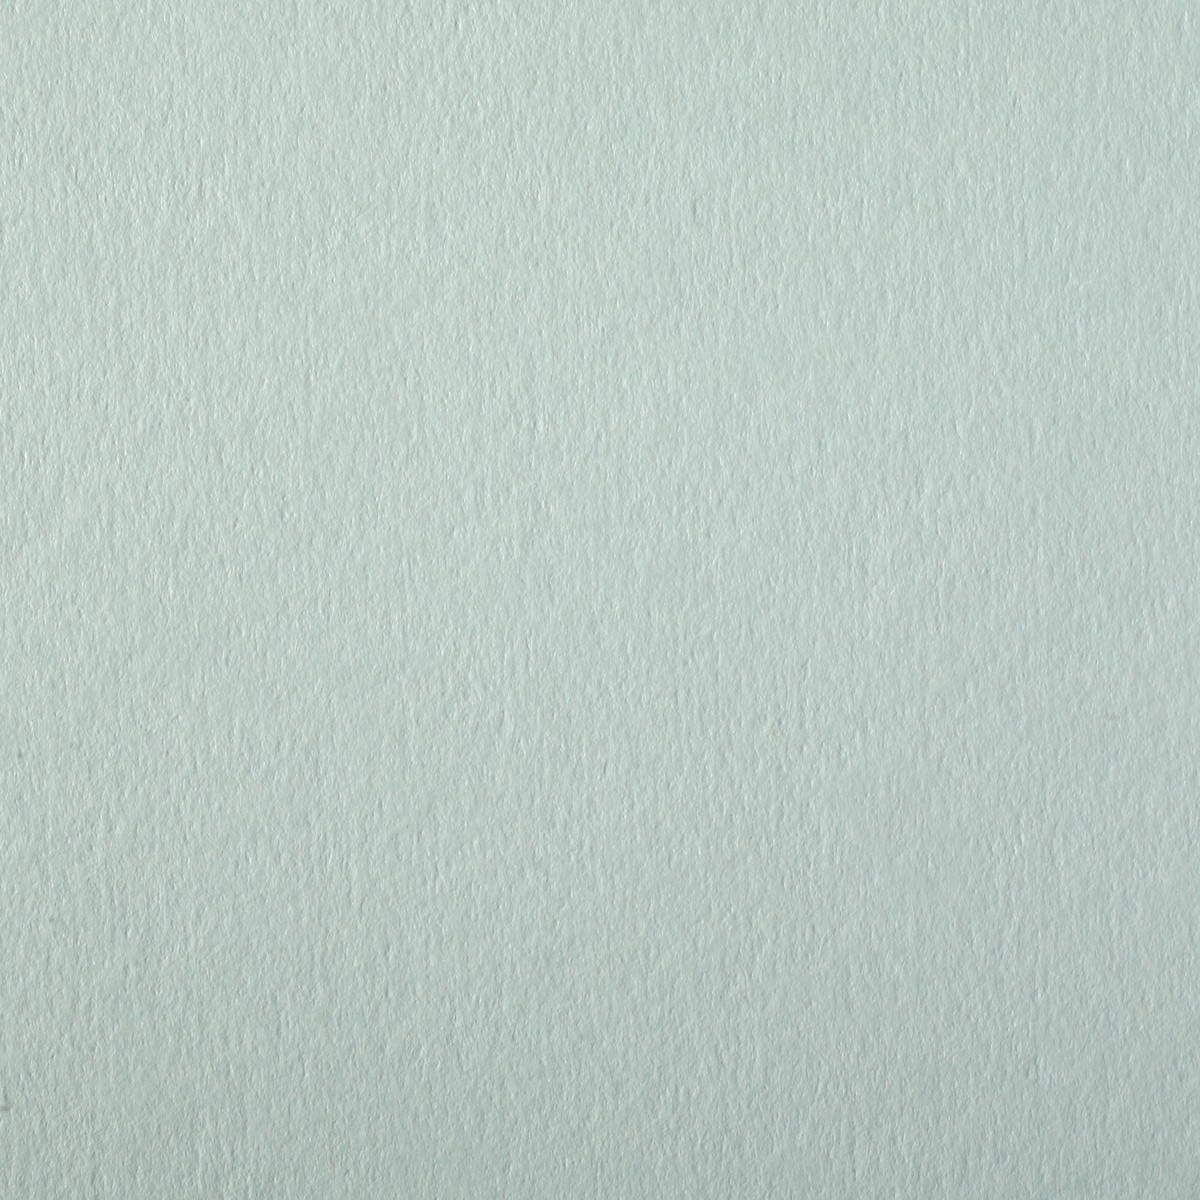 "Colorplan Powder Green 25"" x 38"" 91# Text Sheets"